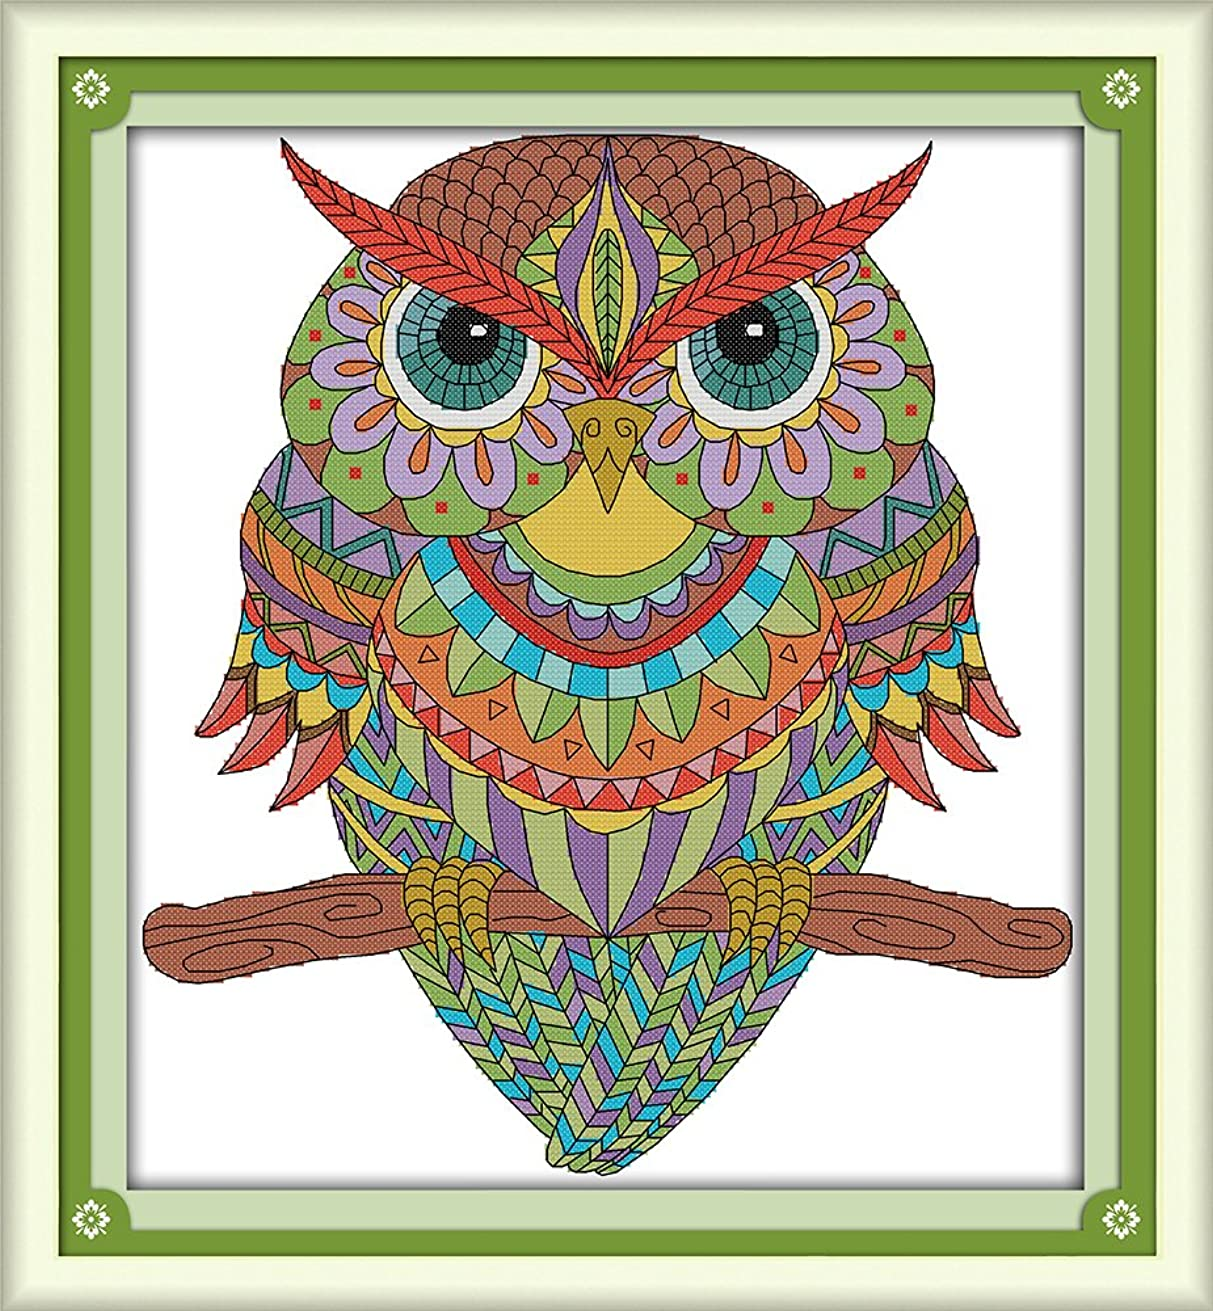 CaptainCrafts New Cross Stitch Kits Patterns Embroidery Kit - Owl (STAMPED)